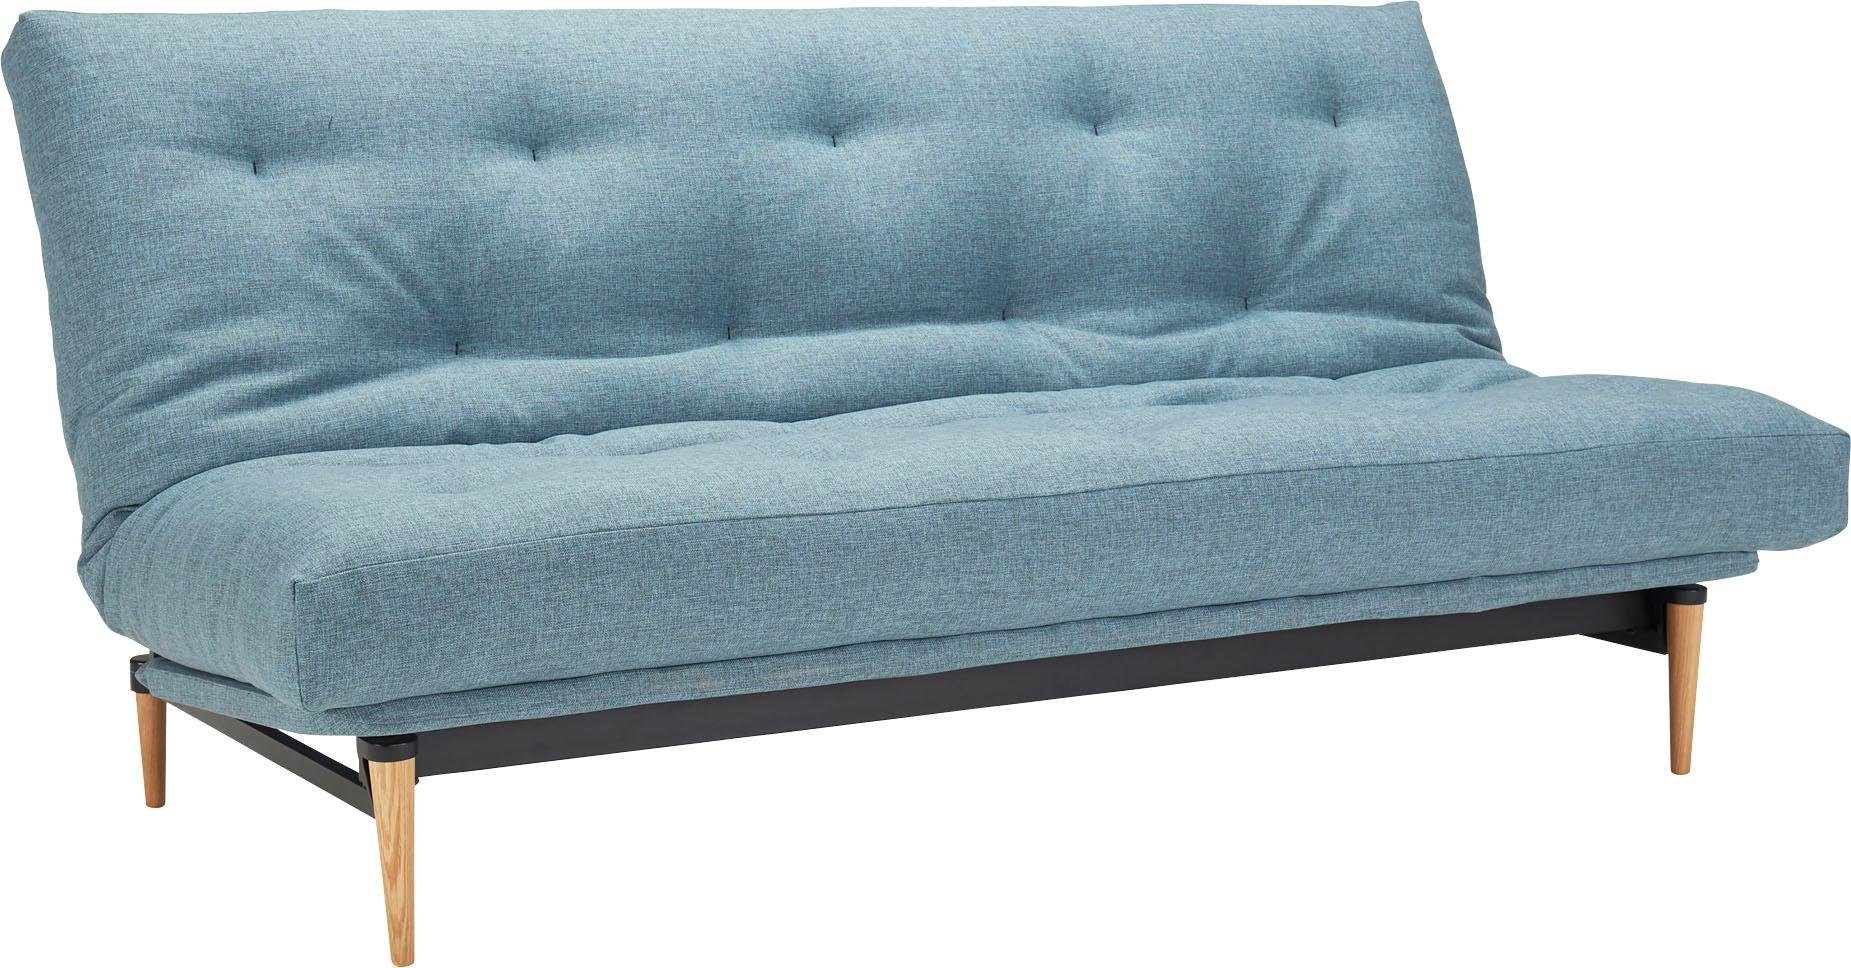 INNOVATION™ Schlafsofa Colpus